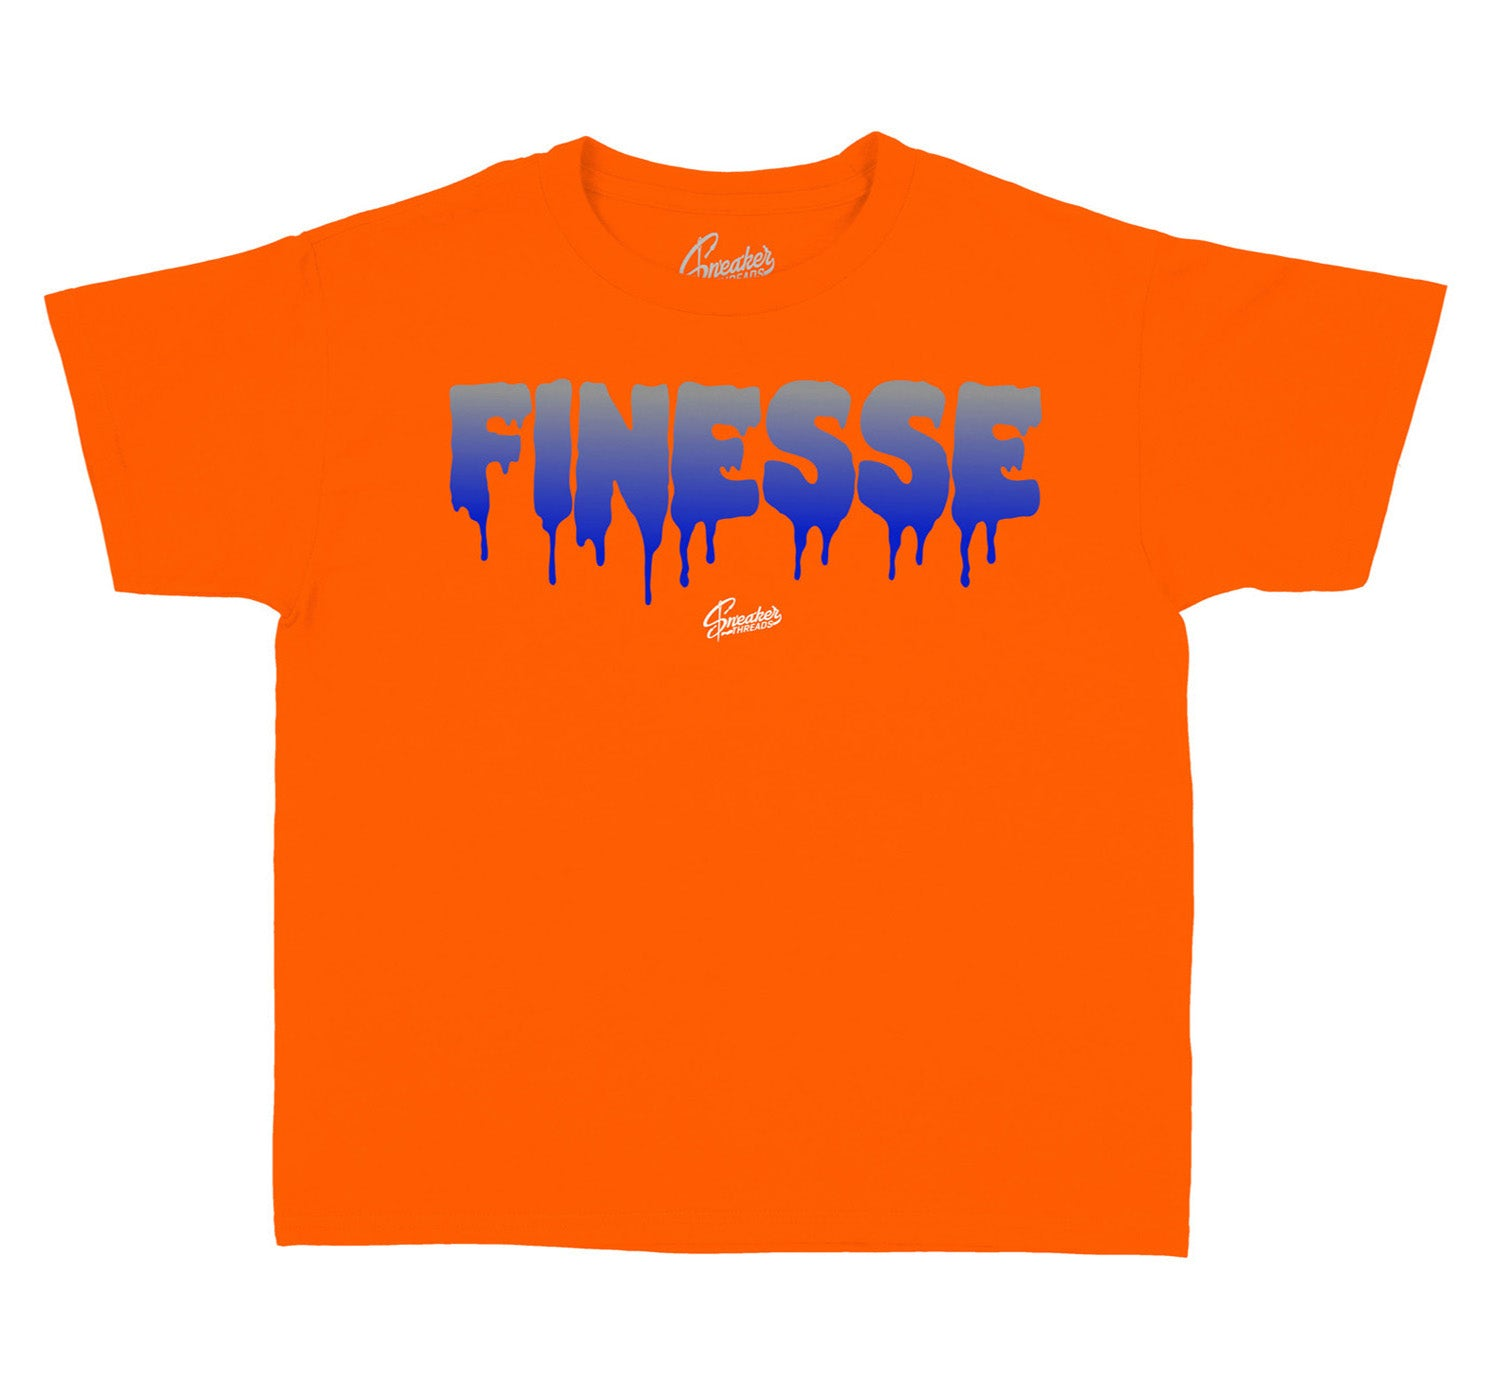 sneaker collection knicks jordan 3 sneakers have matching shirts designed to match